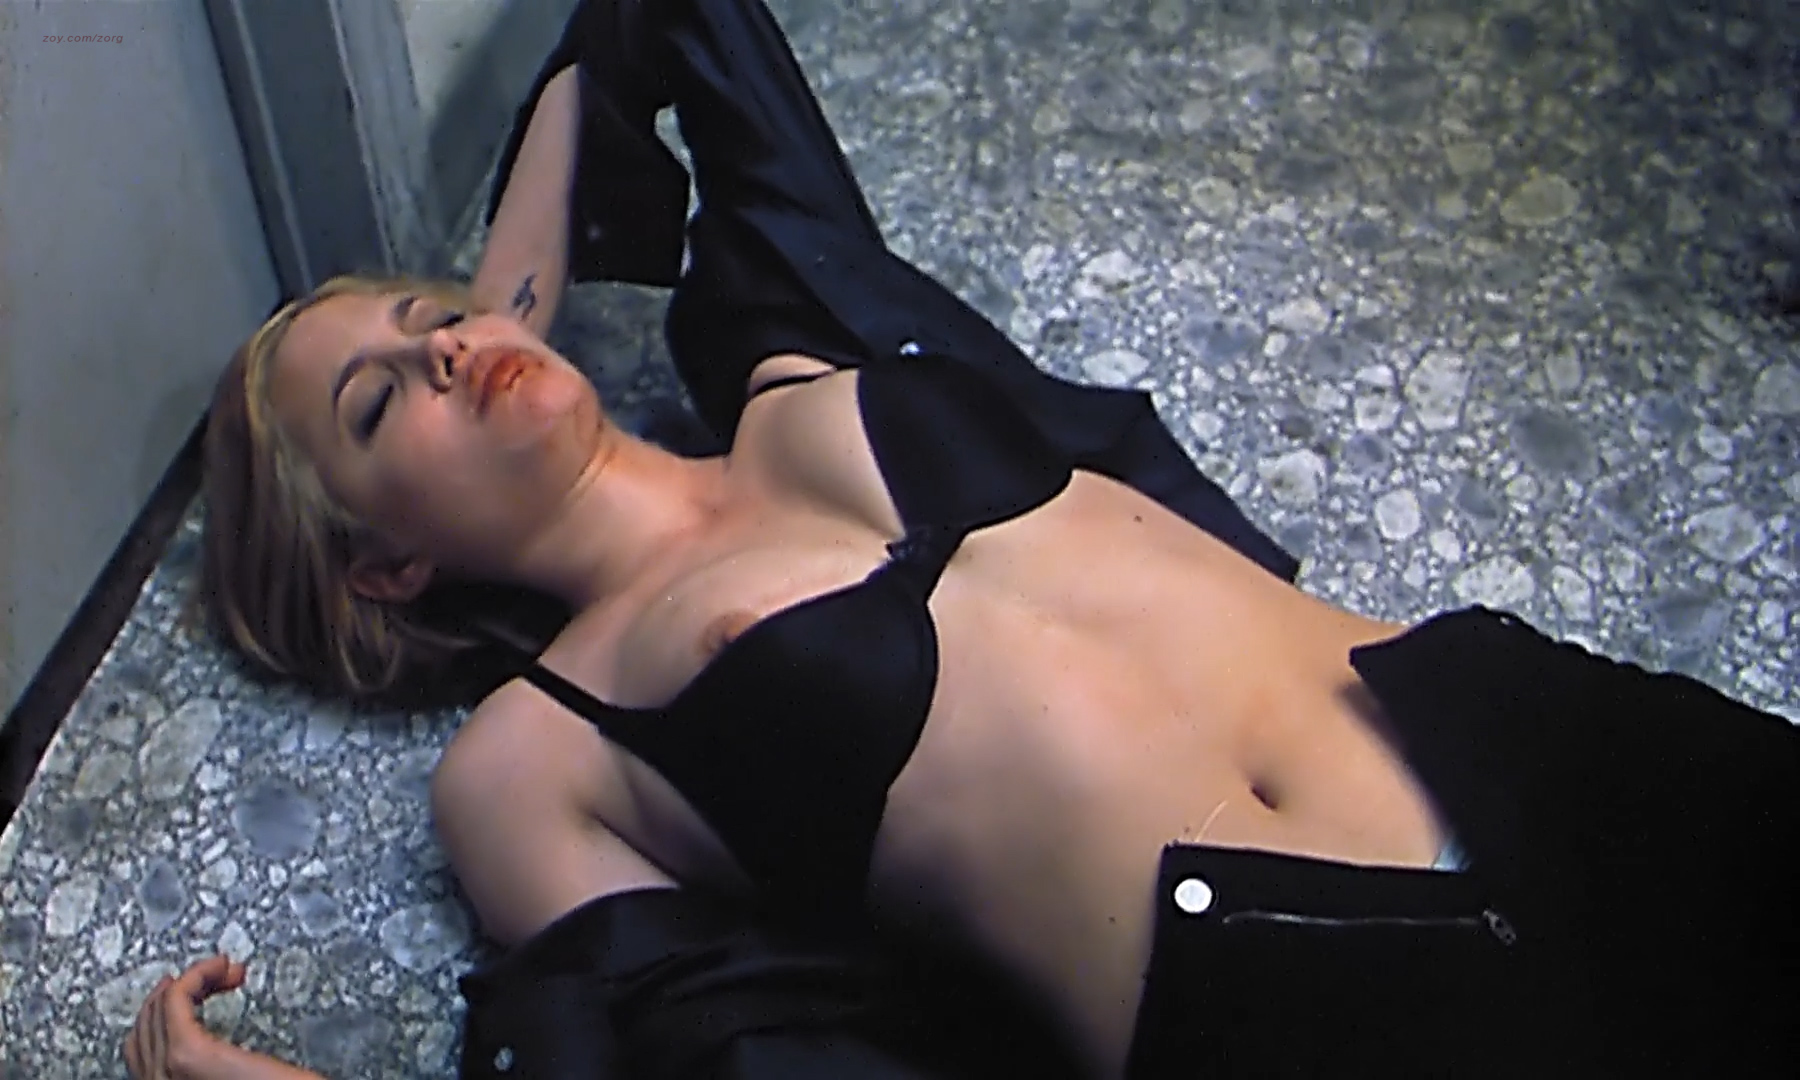 Angelina Jolie nude nipple dirty talks and Rosanna Arquette nude brief topless - Hell' s Kitchen (1998) hdtv1080p (13)